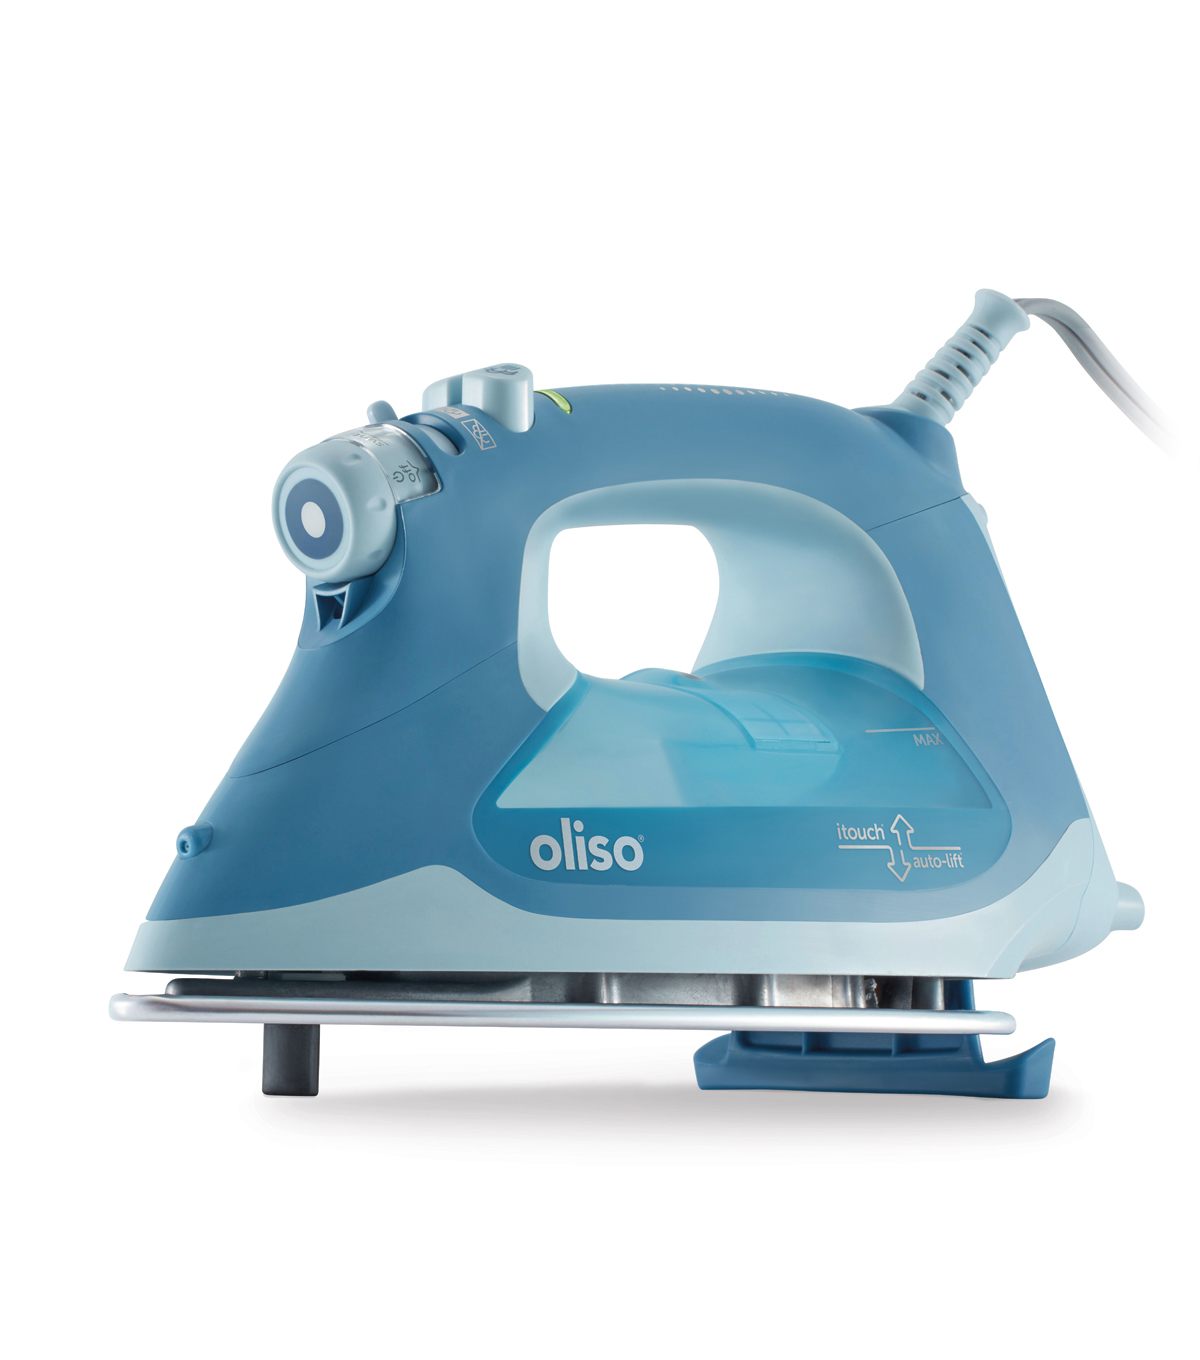 Oliso iTouch TG-1050 Smart Iron-Blue